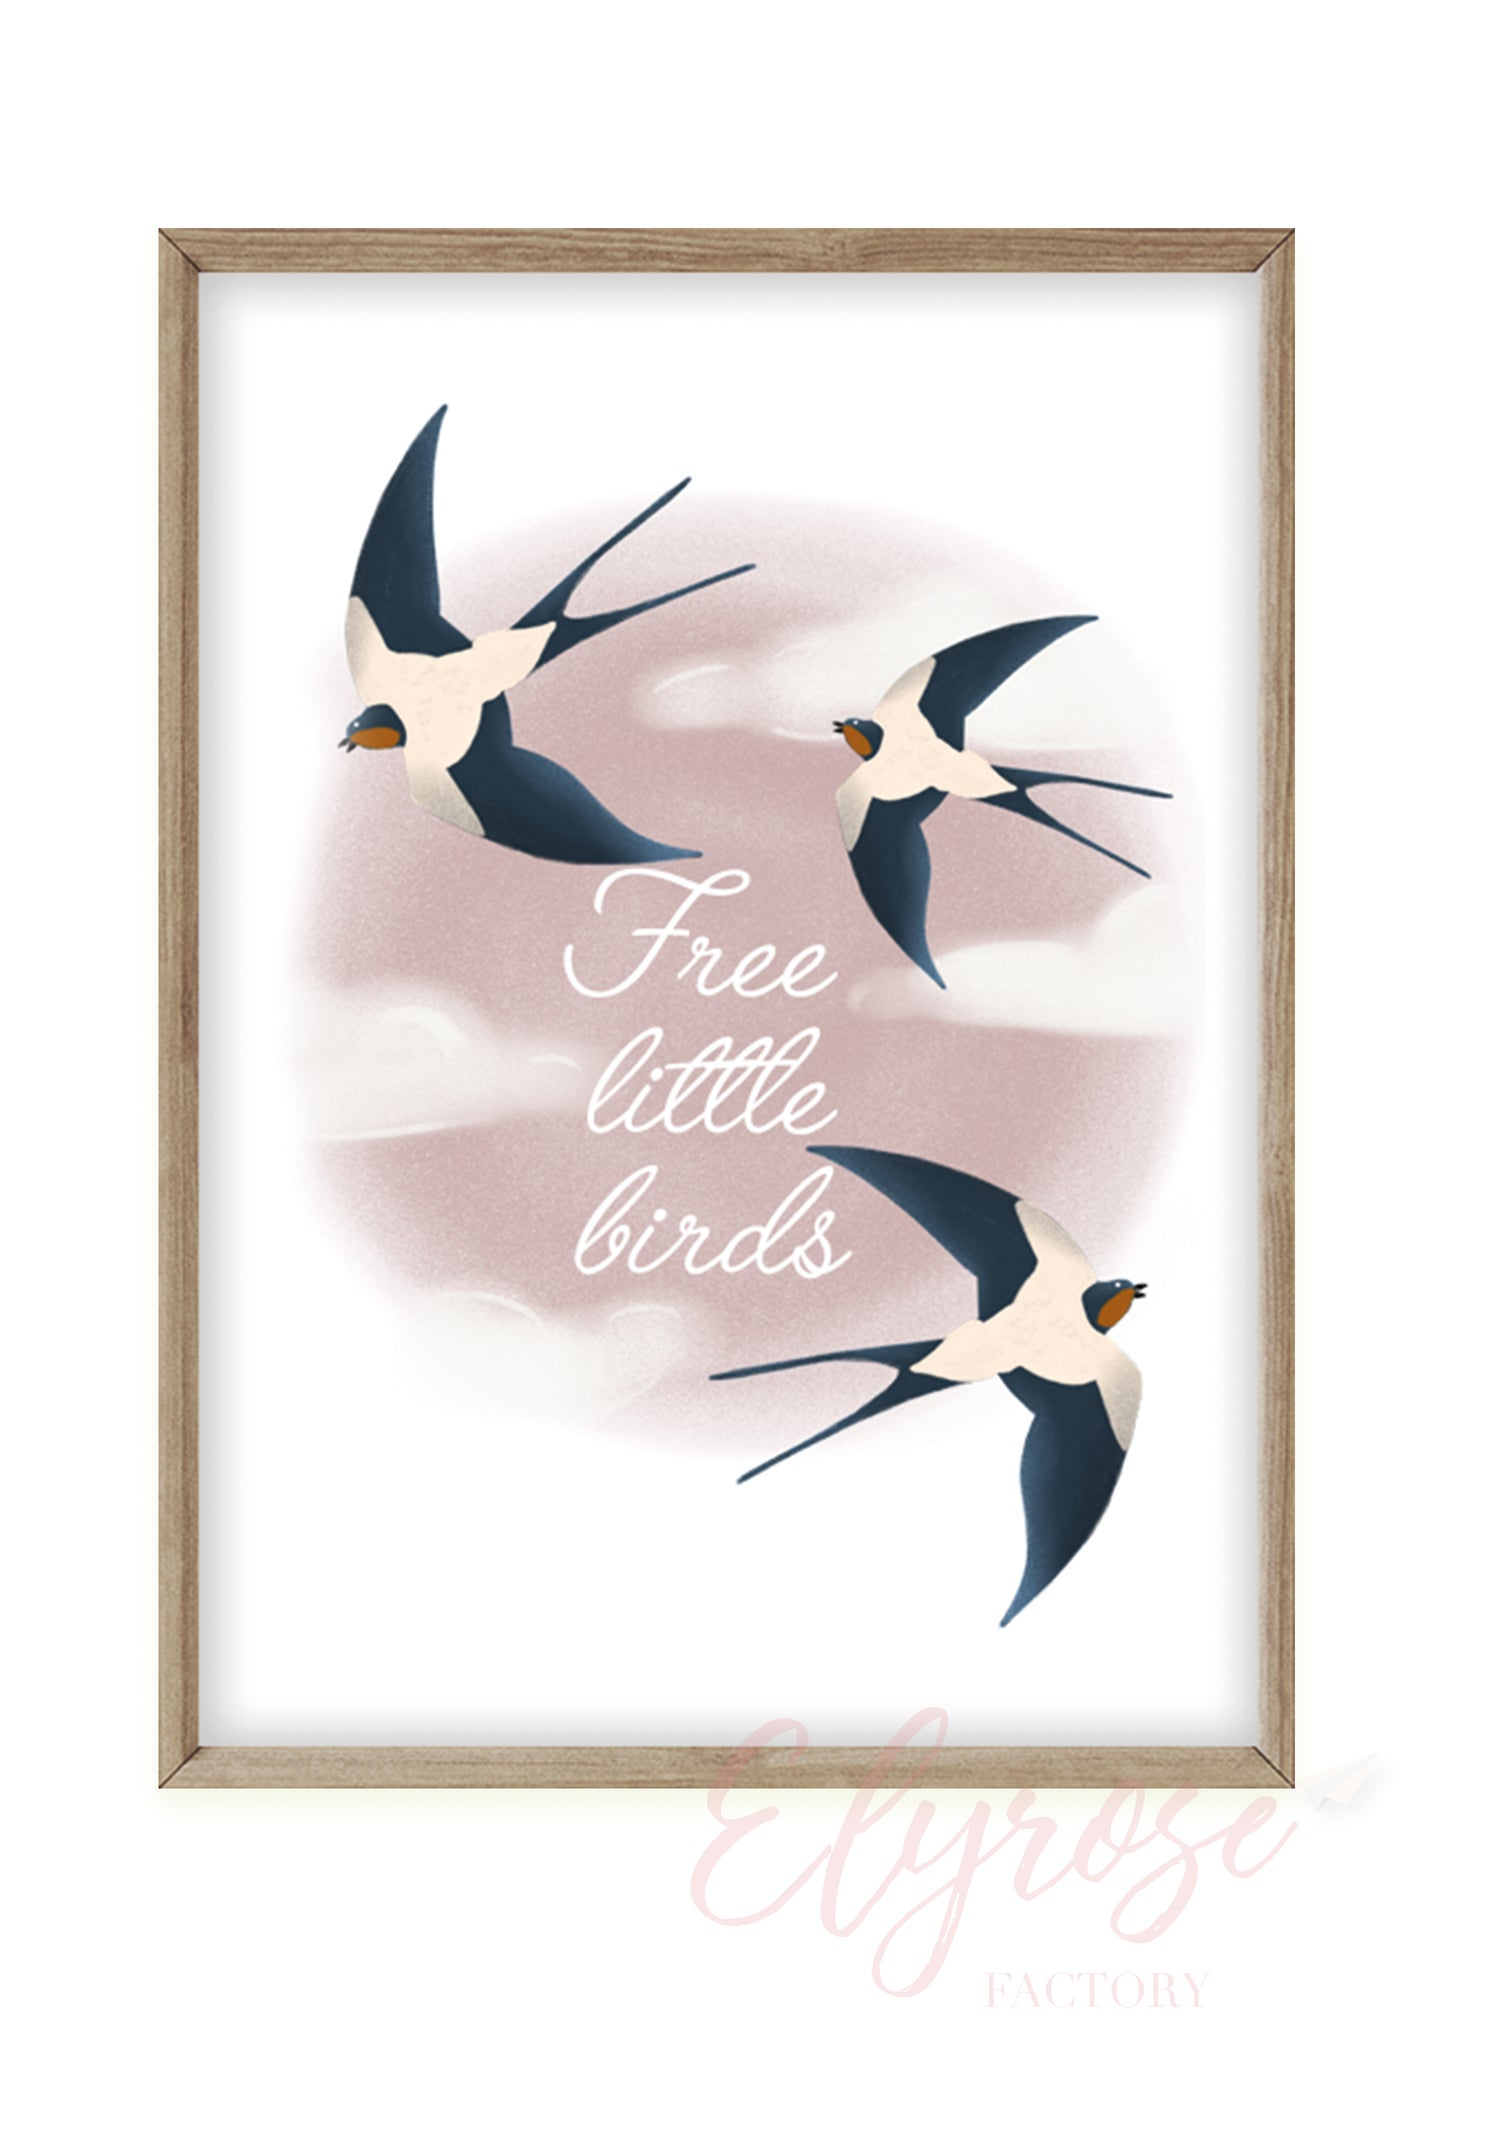 Image of Affiche Free little birds